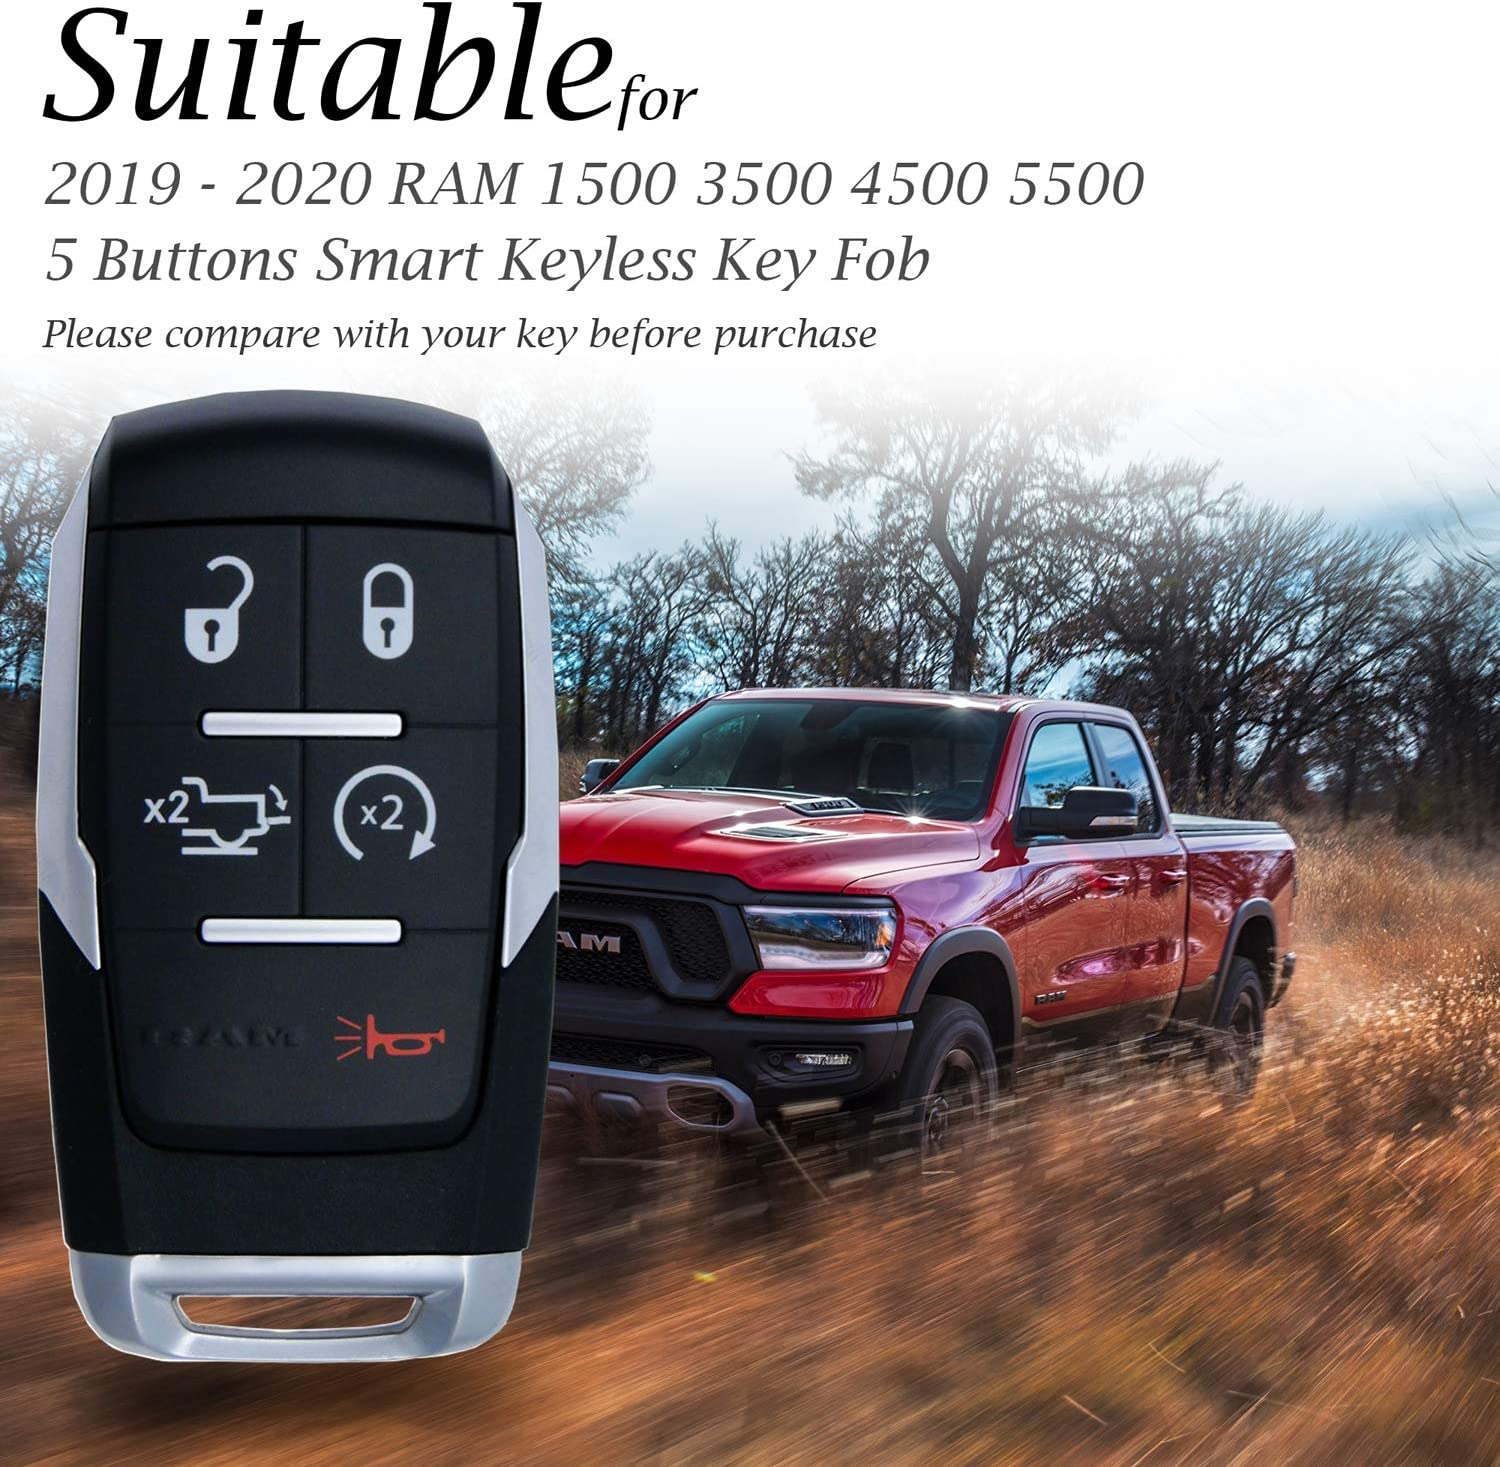 5-Button, Red Vitodeco Genuine Leather Keyless Entry Remote Control Smart Key Case Cover with Leather Key Chain for 2019-2020 RAM 2500 5500 4500 3500